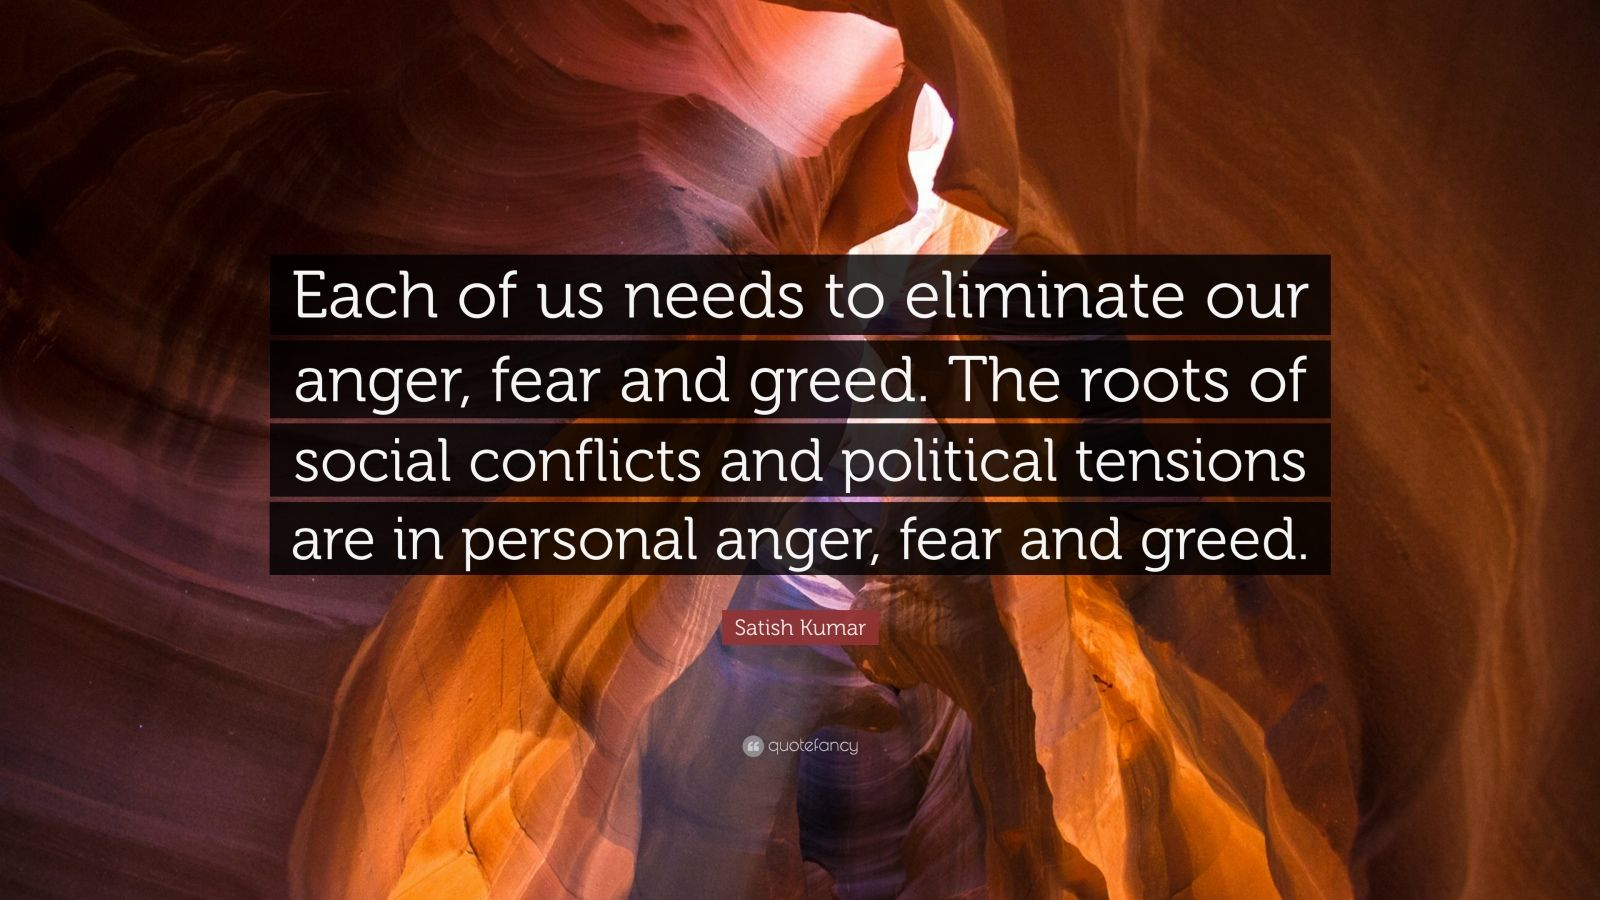 """Satish Kumar Quote: """"Each of us needs to eliminate our anger, fear and greed. The roots of social conflicts and political tensions are in personal anger, fear and greed."""""""